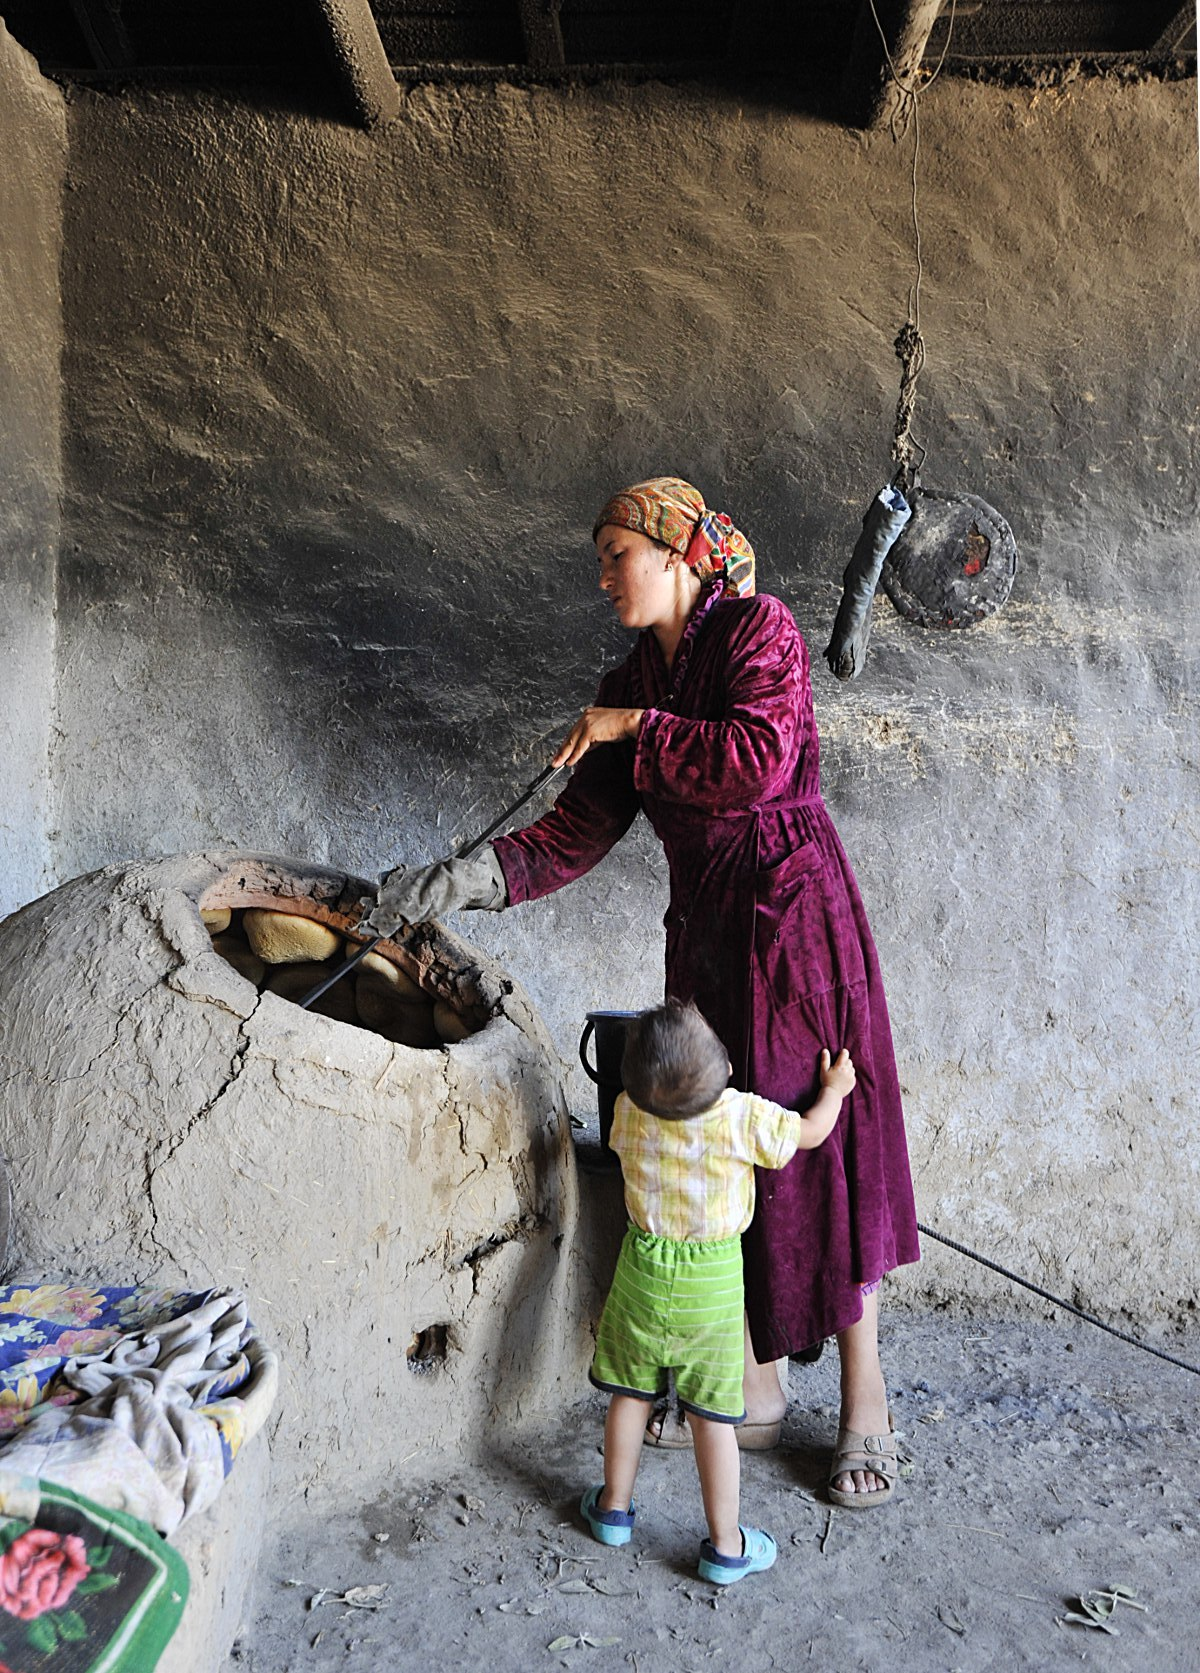 Uzbek Woman Making Naan and Caring for Child, Uzbekistan 2012